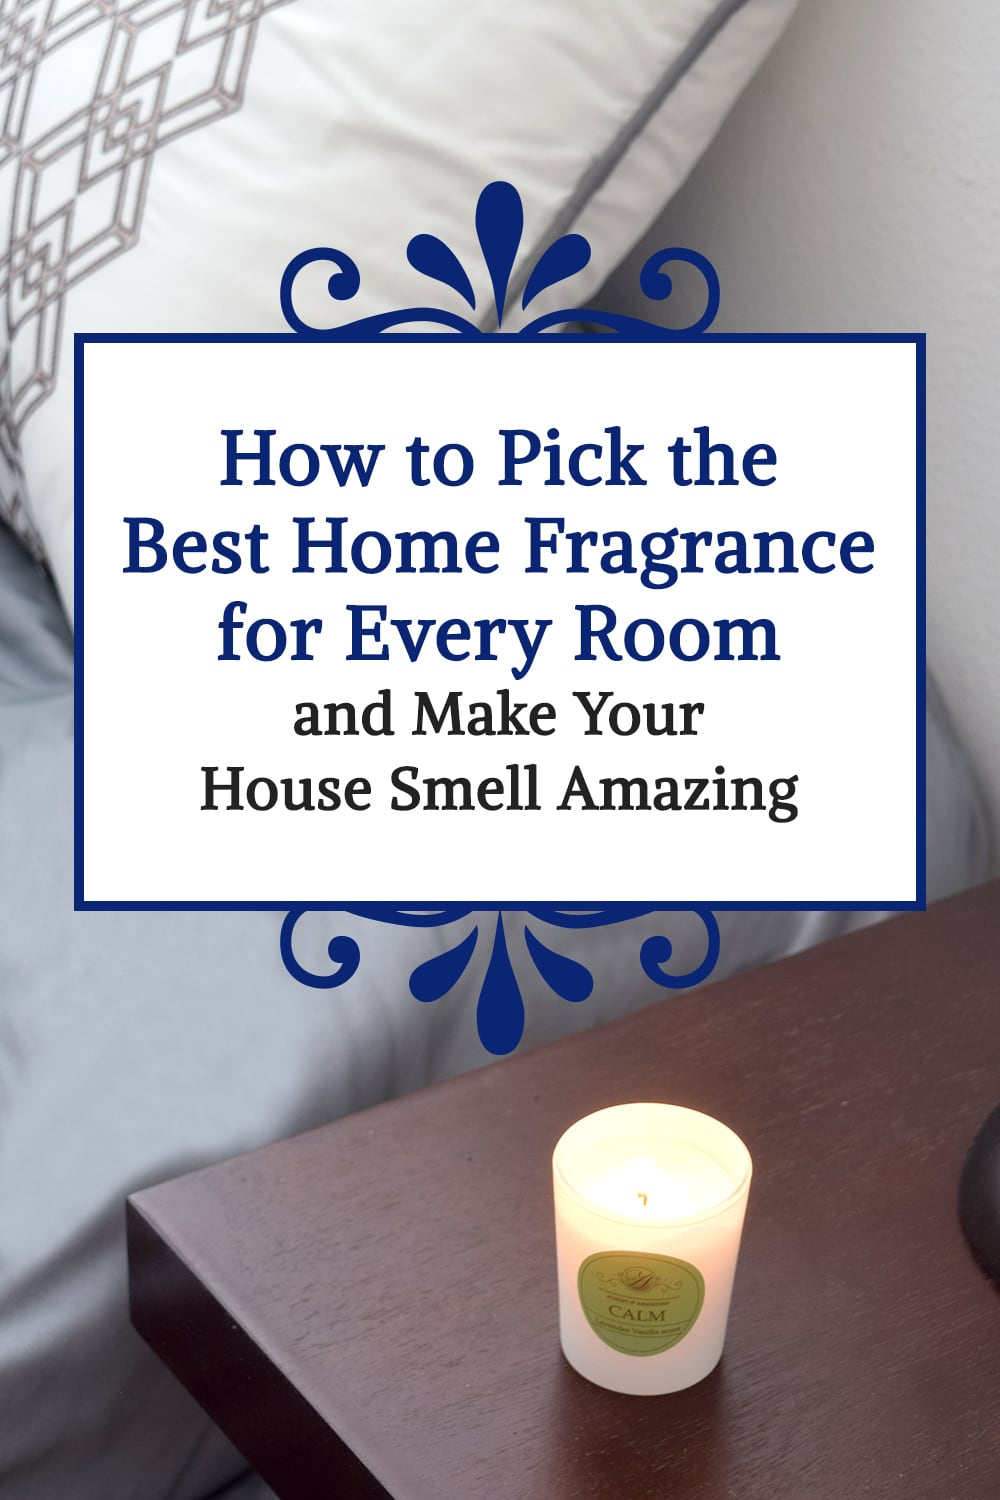 How to Pick the Best Home Fragrance for Every Room and Make Your House Smell Amazing